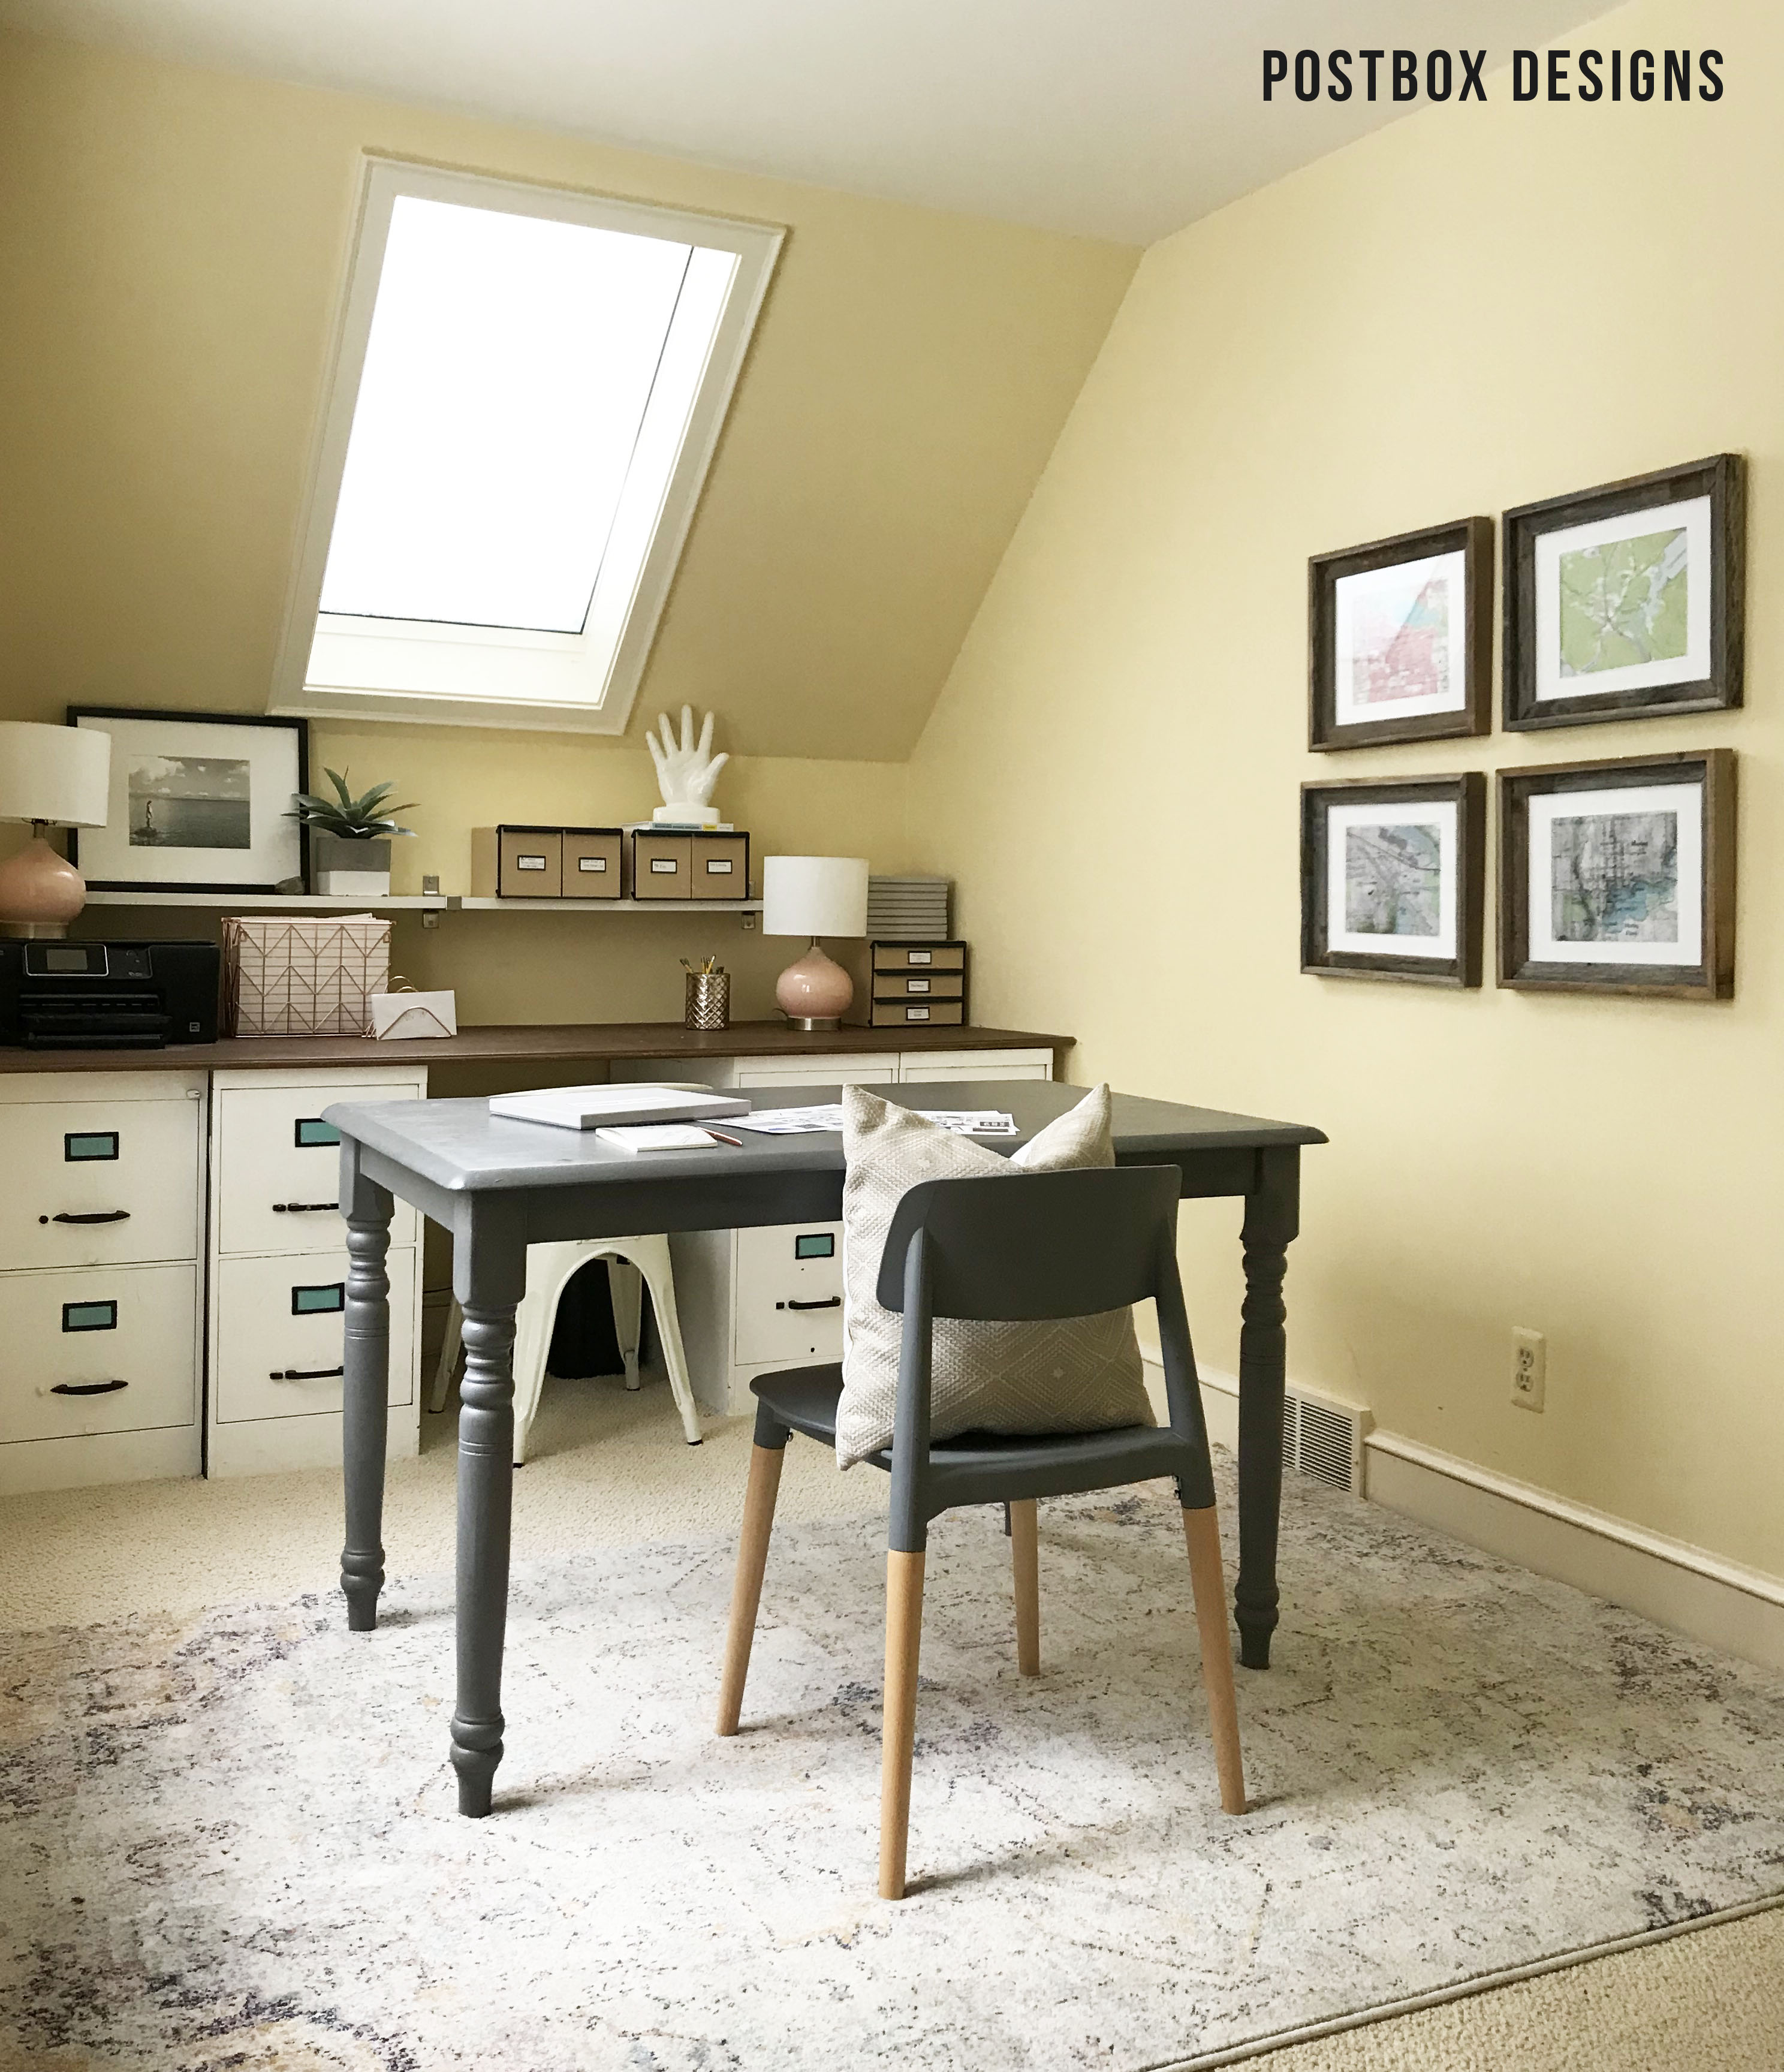 Take A Peek Into My Own Girl Boss Home Office Postbox Designs